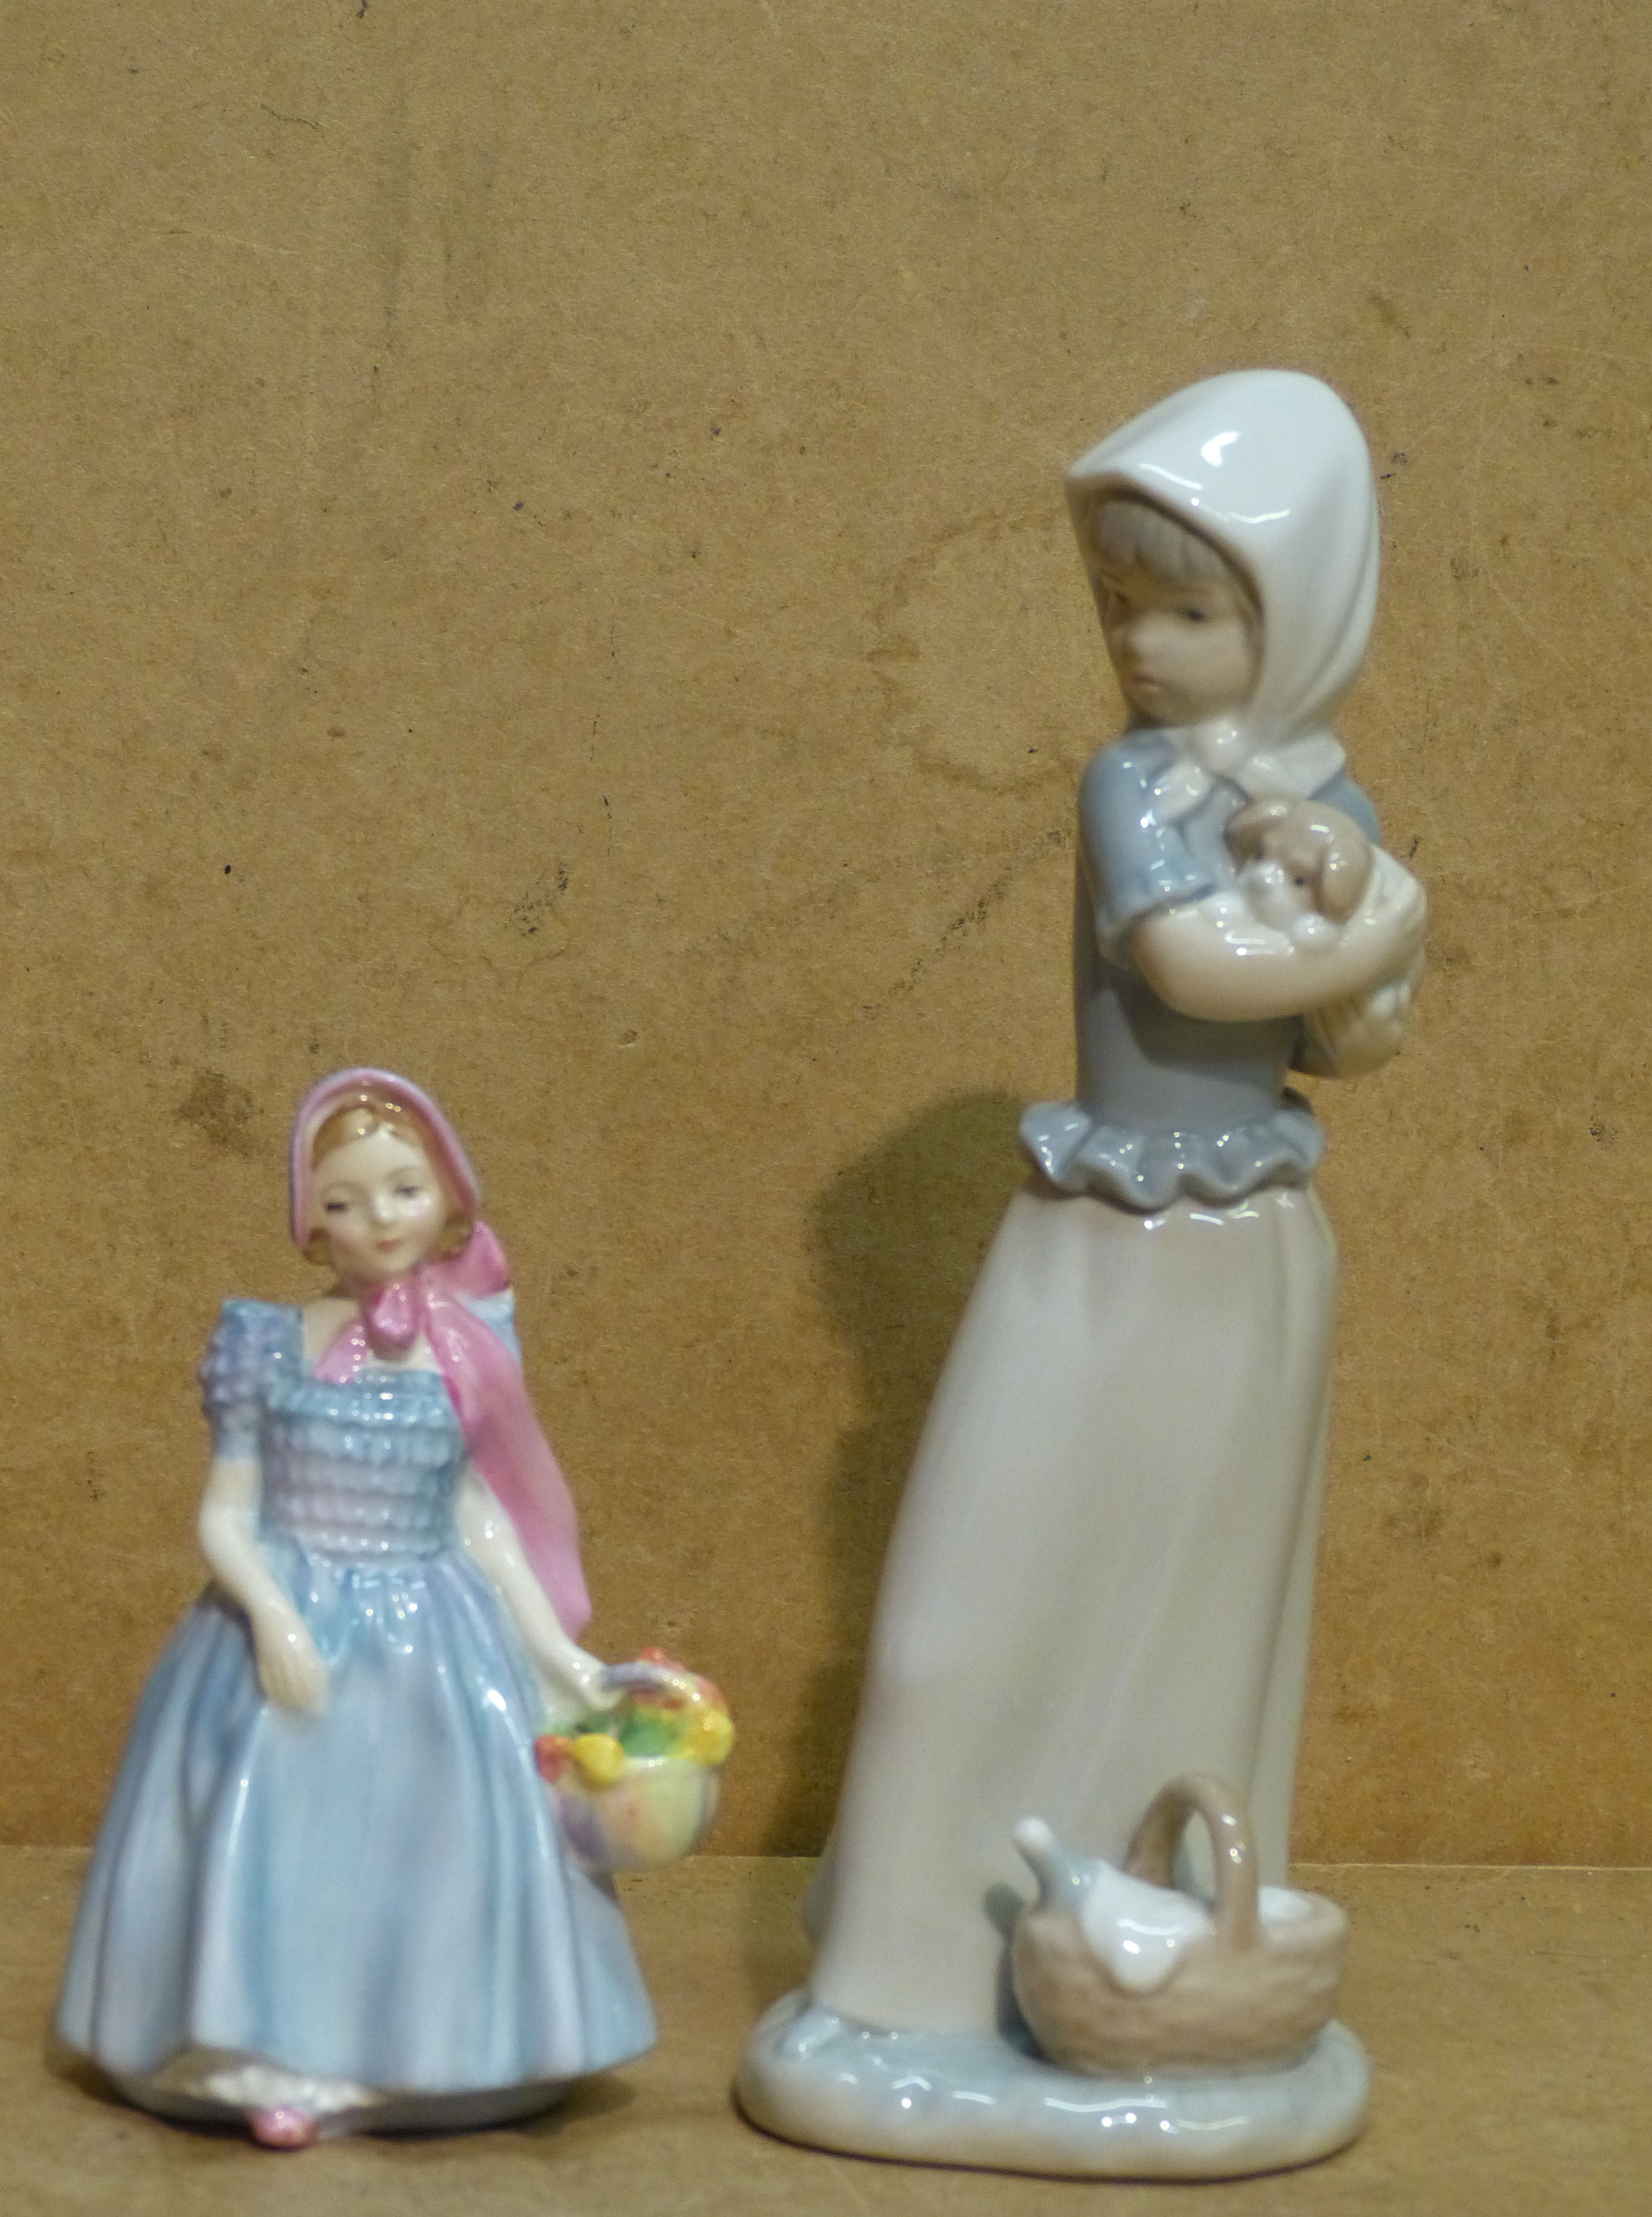 A Royal Doulton Small Figurine ``Wendy`` HN2109 also a Nao figure of a young girl holding a puppy